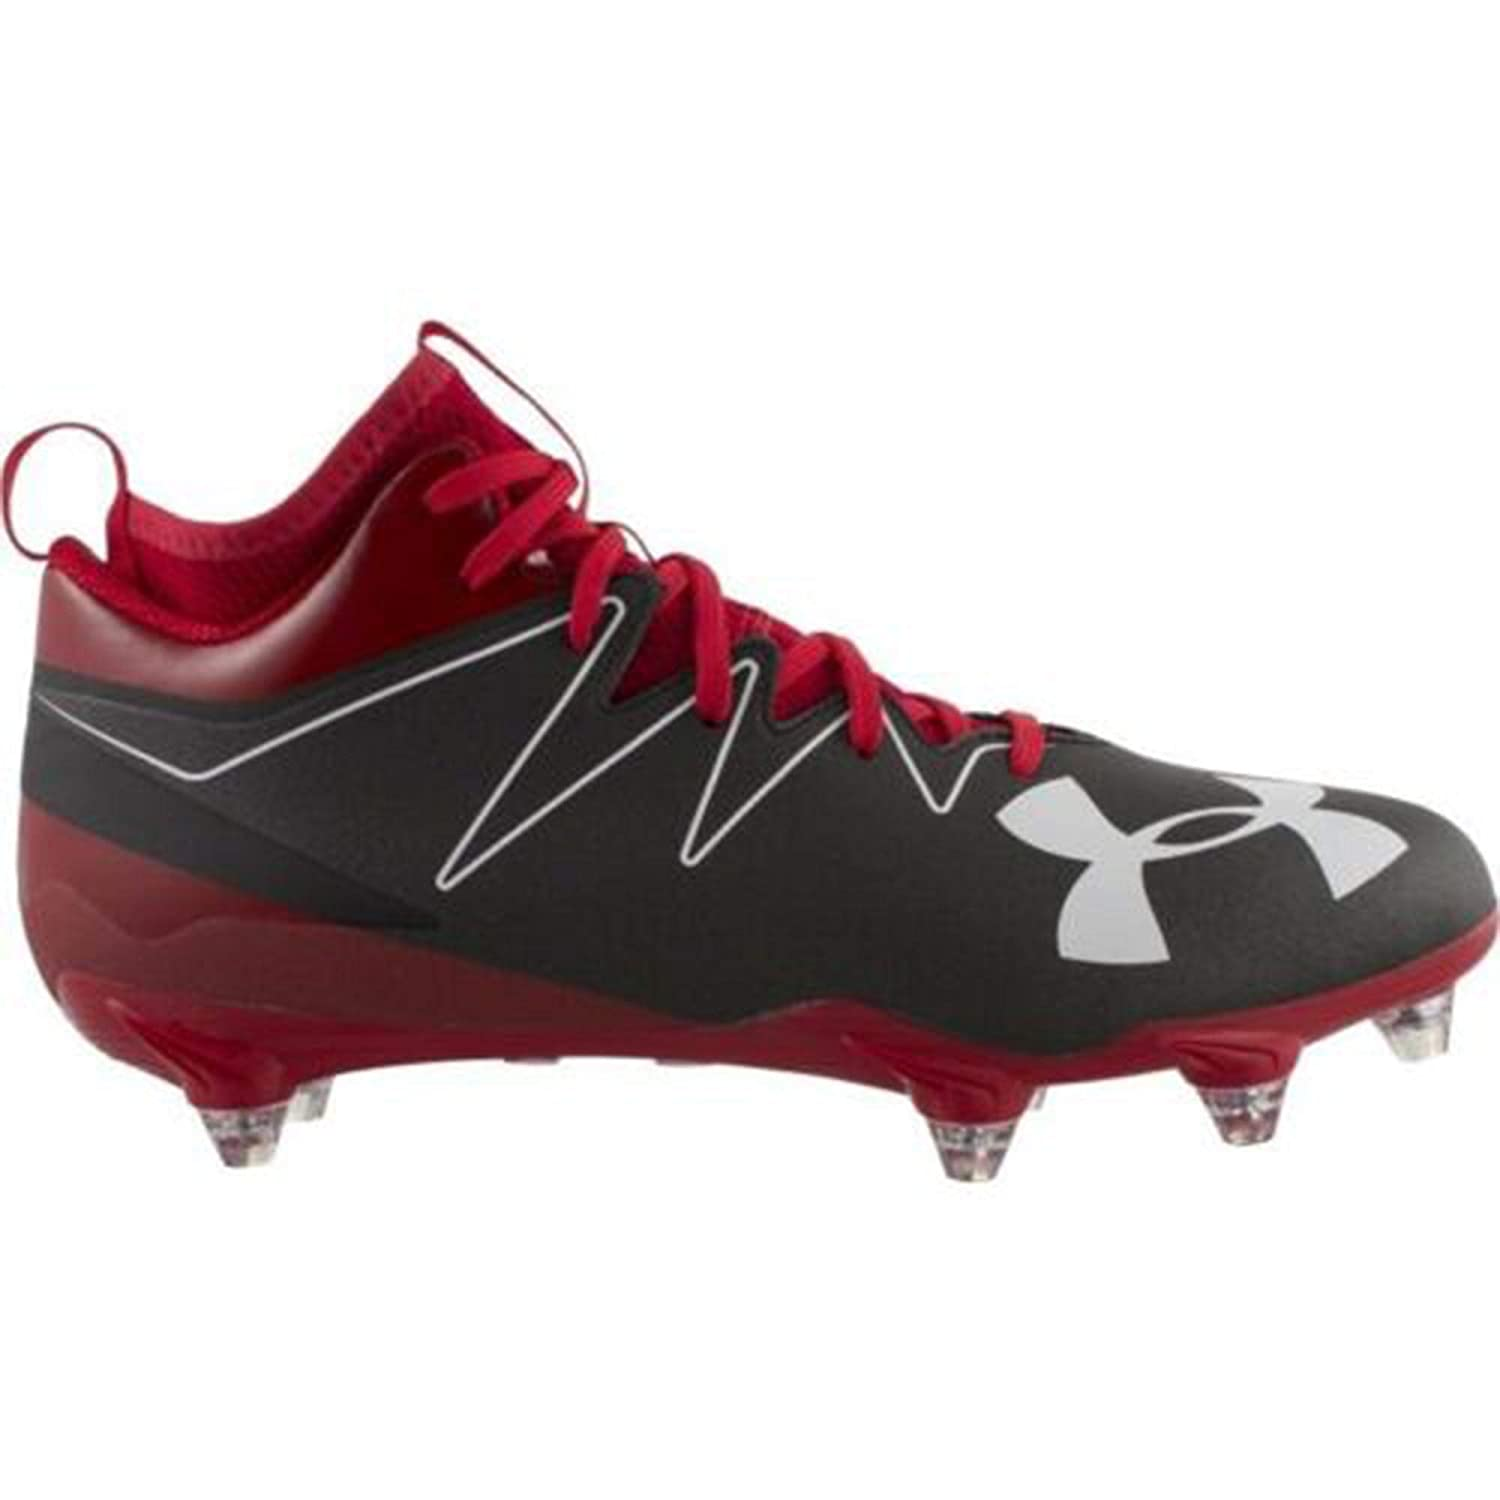 Under Armour Nitro Mid D Men's Football Cleats (8, 黒/赤 (061))